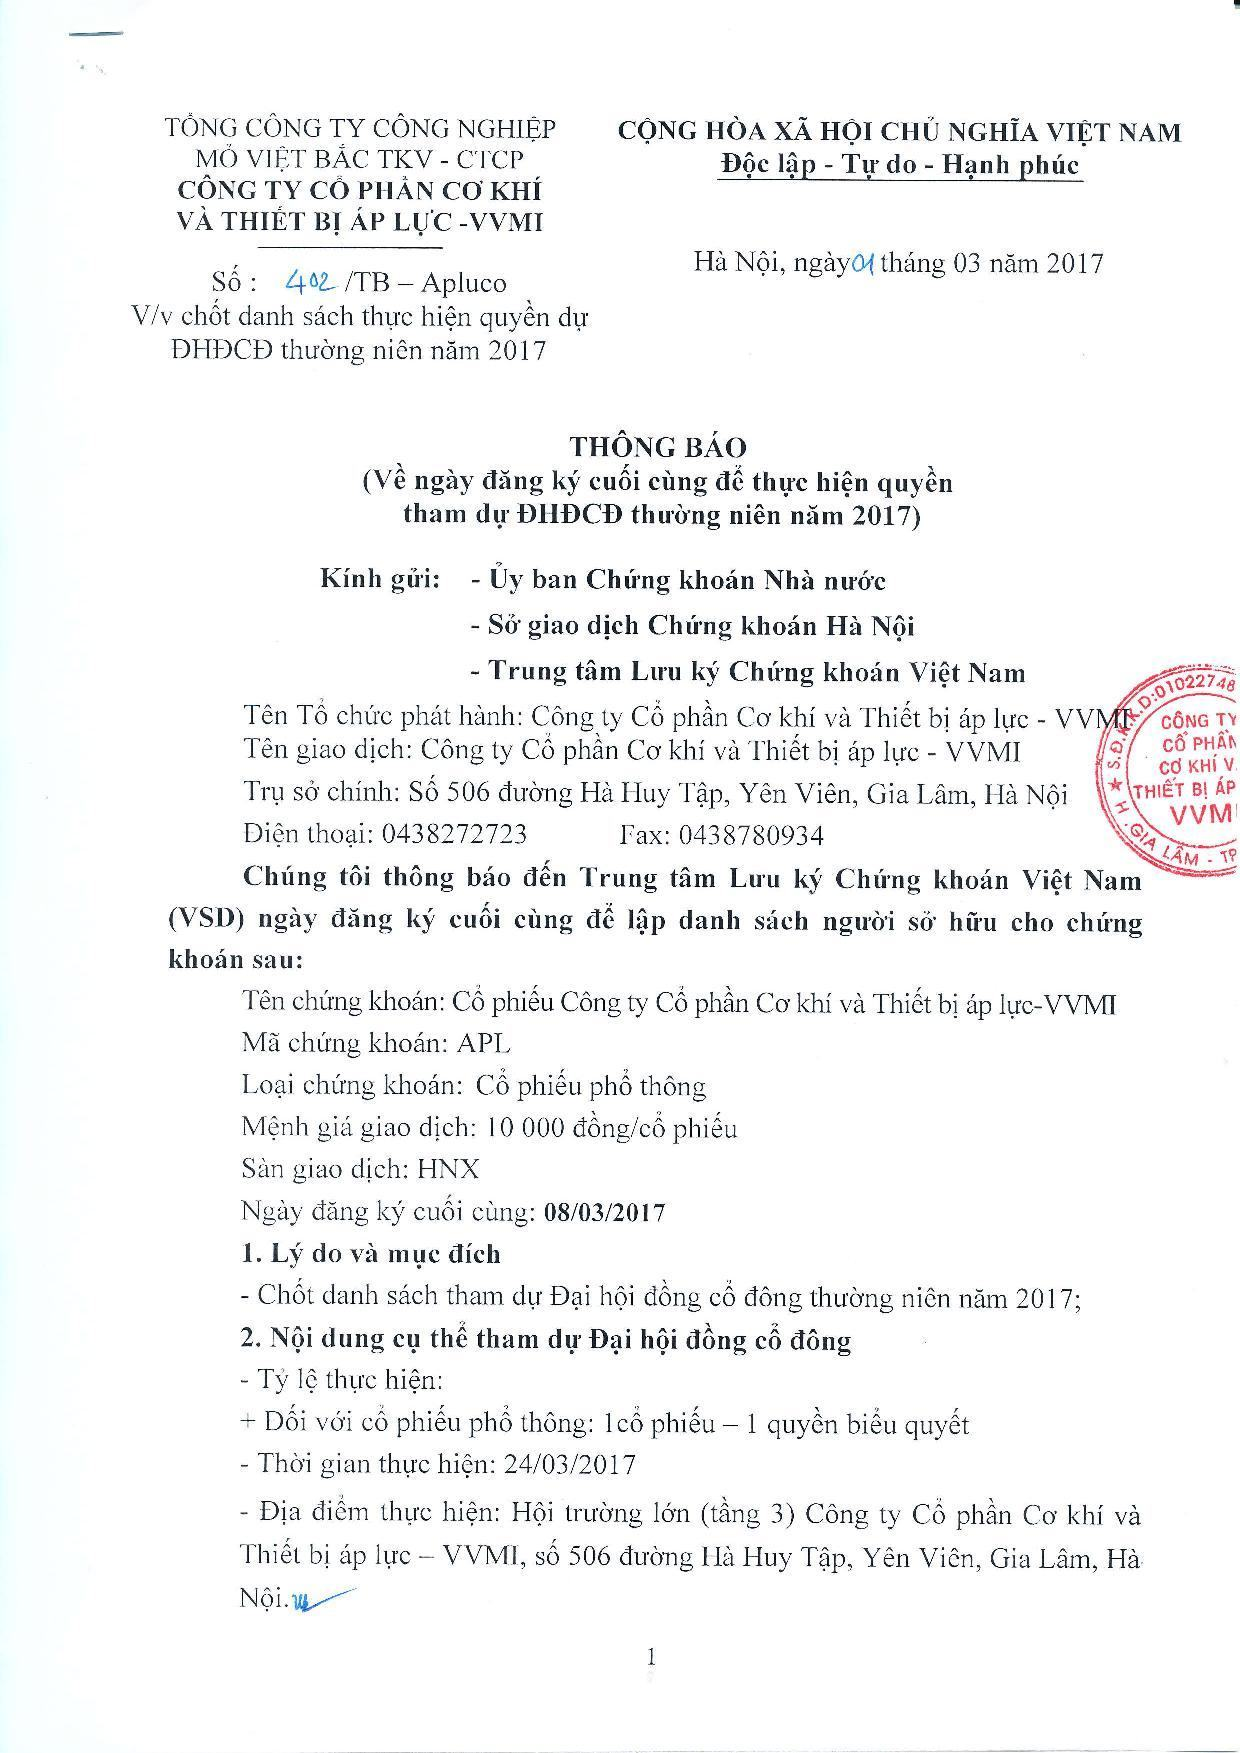 IMG_0001-page-001